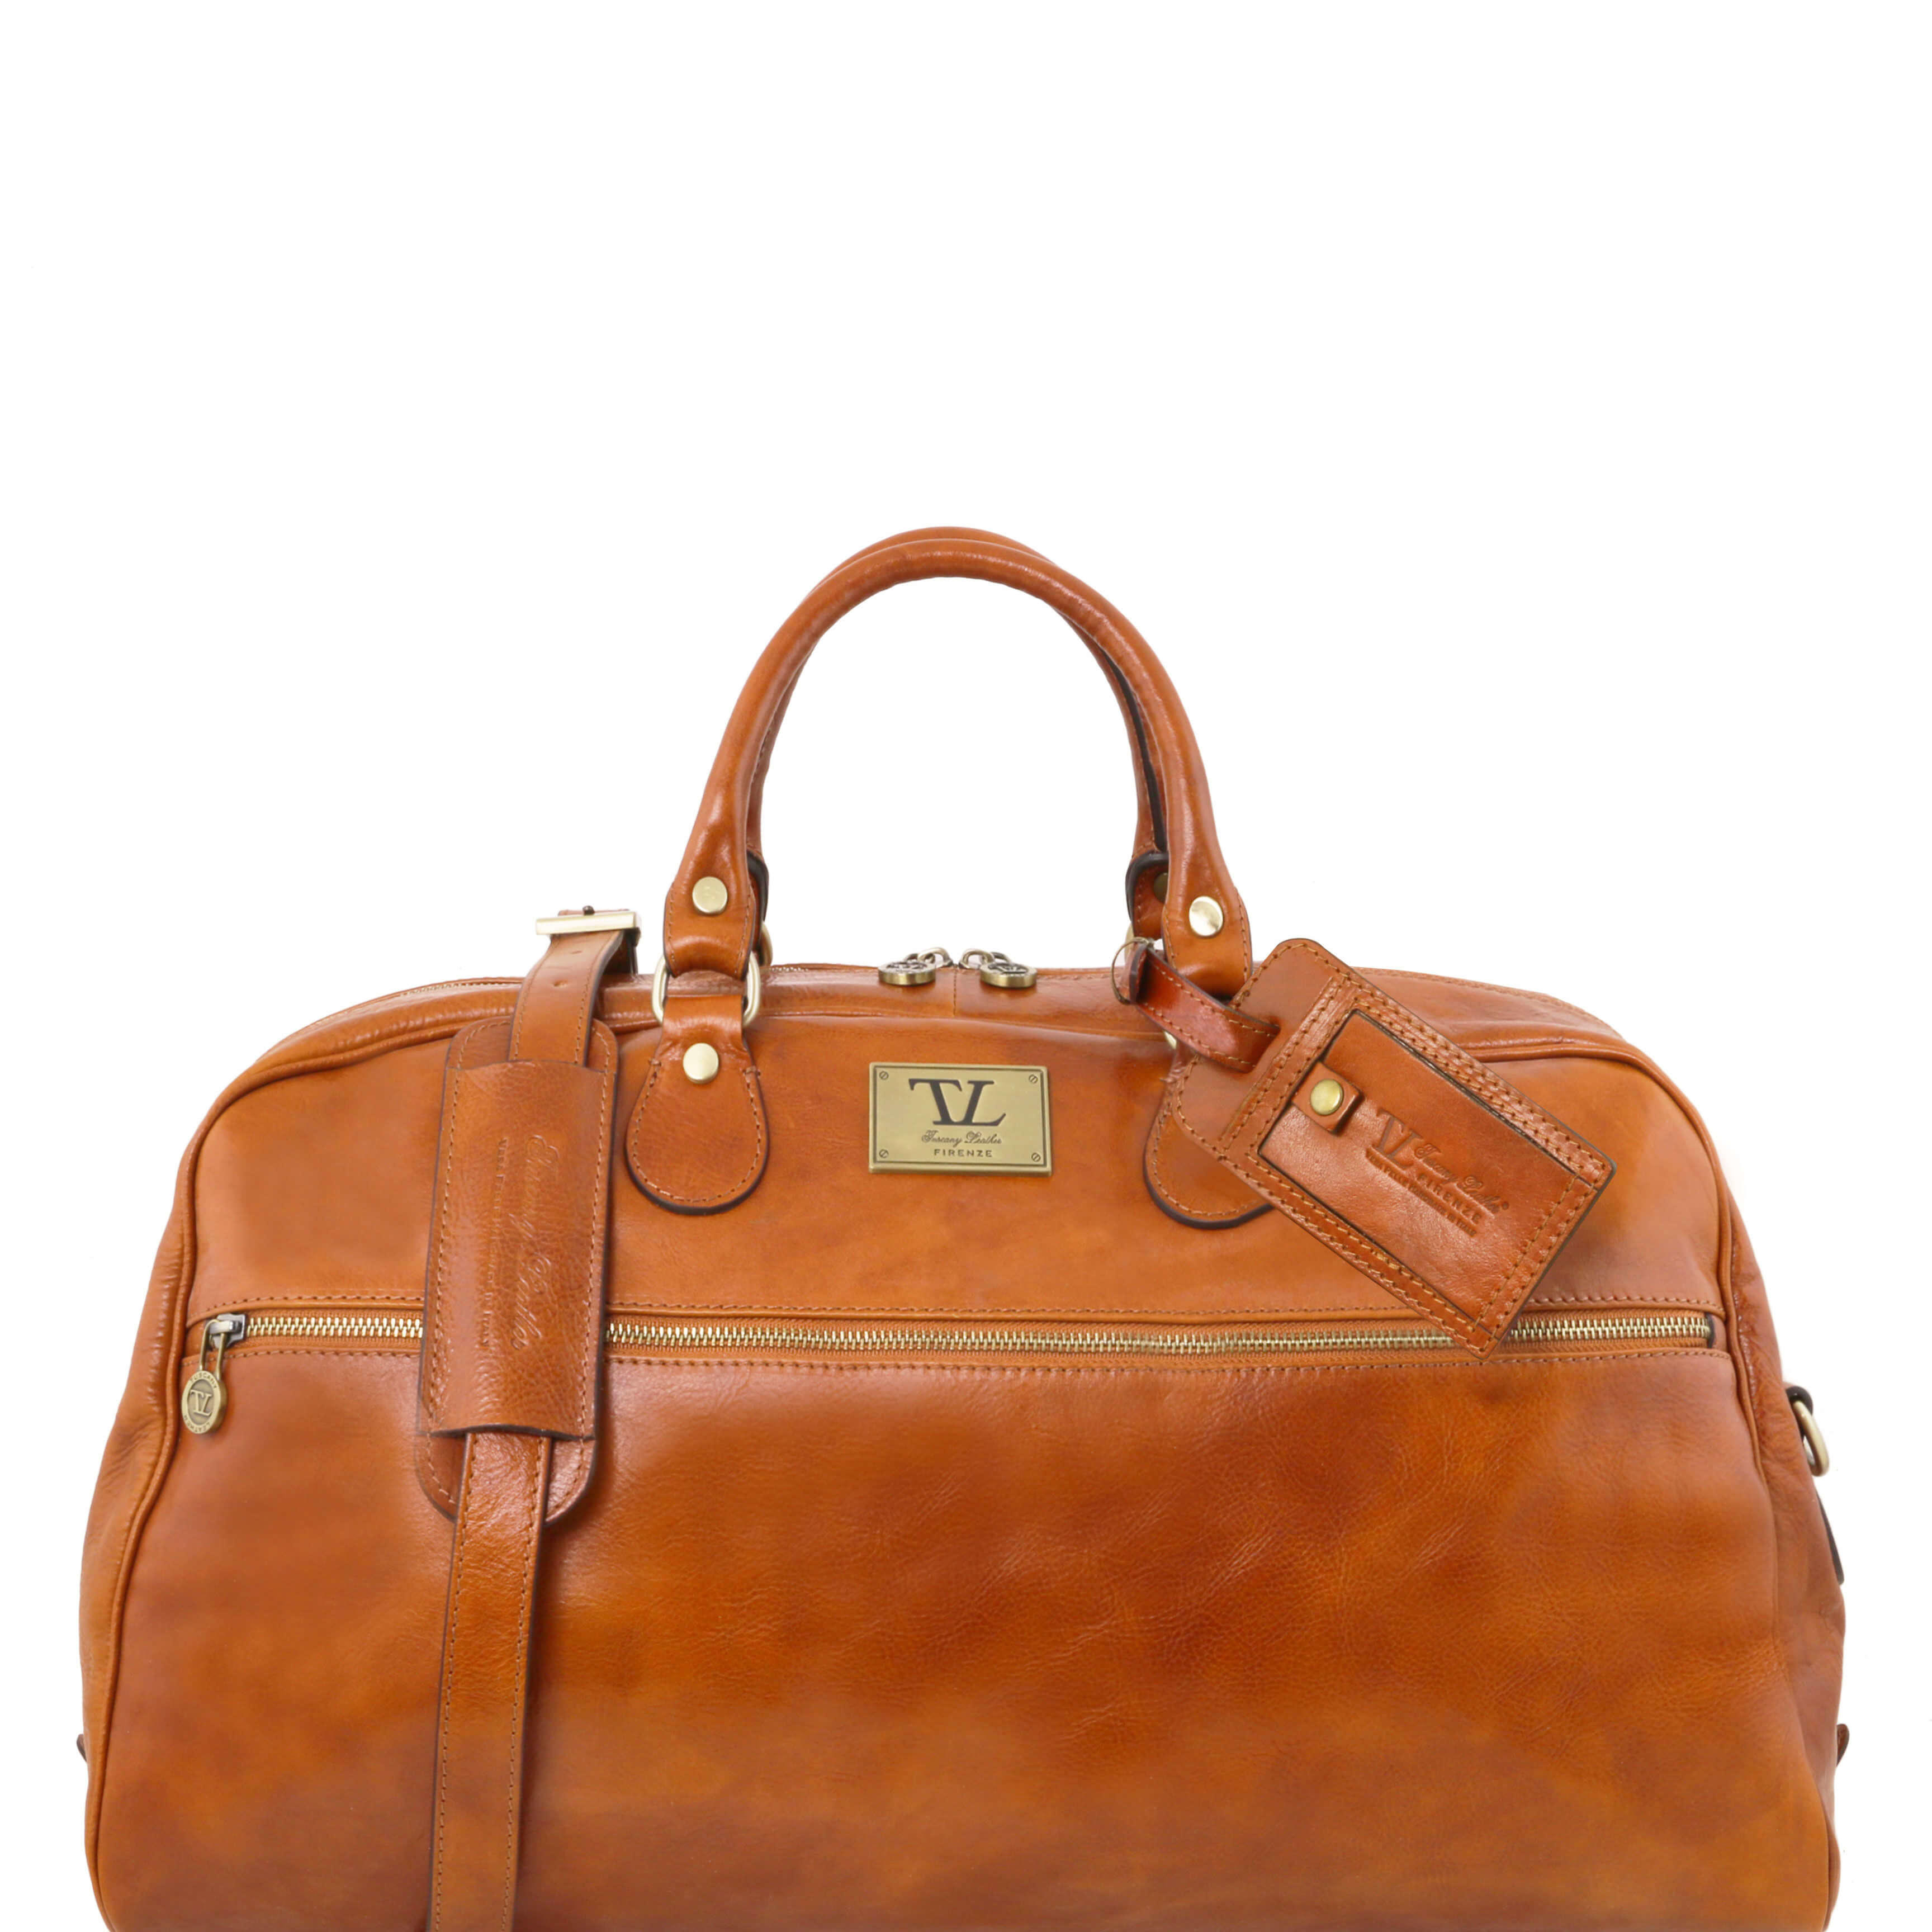 TL141422 XL Leather Voyager Holdall-Travel-Luggage-Duffel Bag-Case & Shoulder Strap In Honey